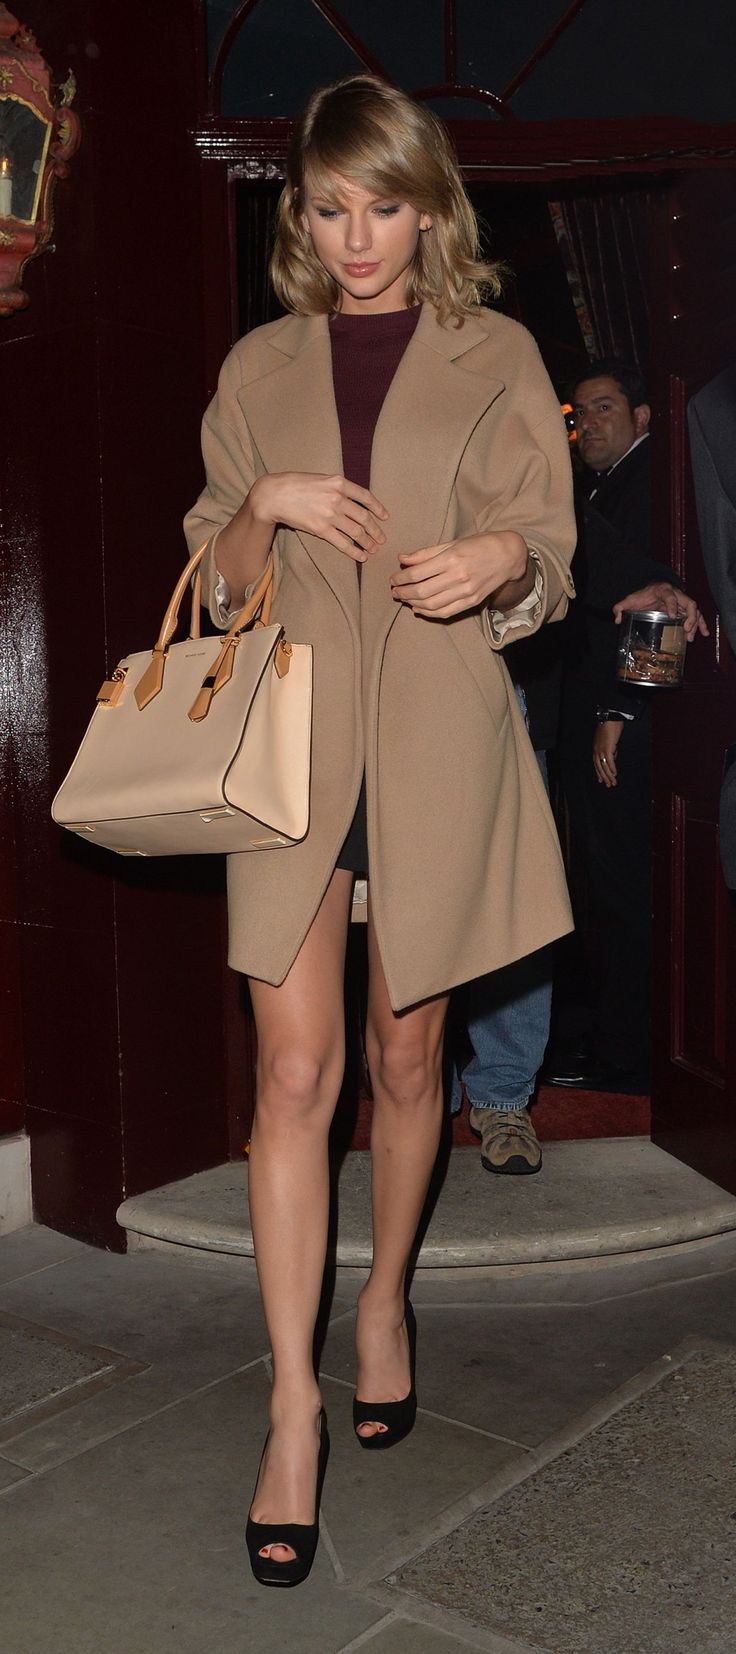 taylor-swift-leaving-loulou-s-club-in-london-june-2015_1.jpg (1280×2878)